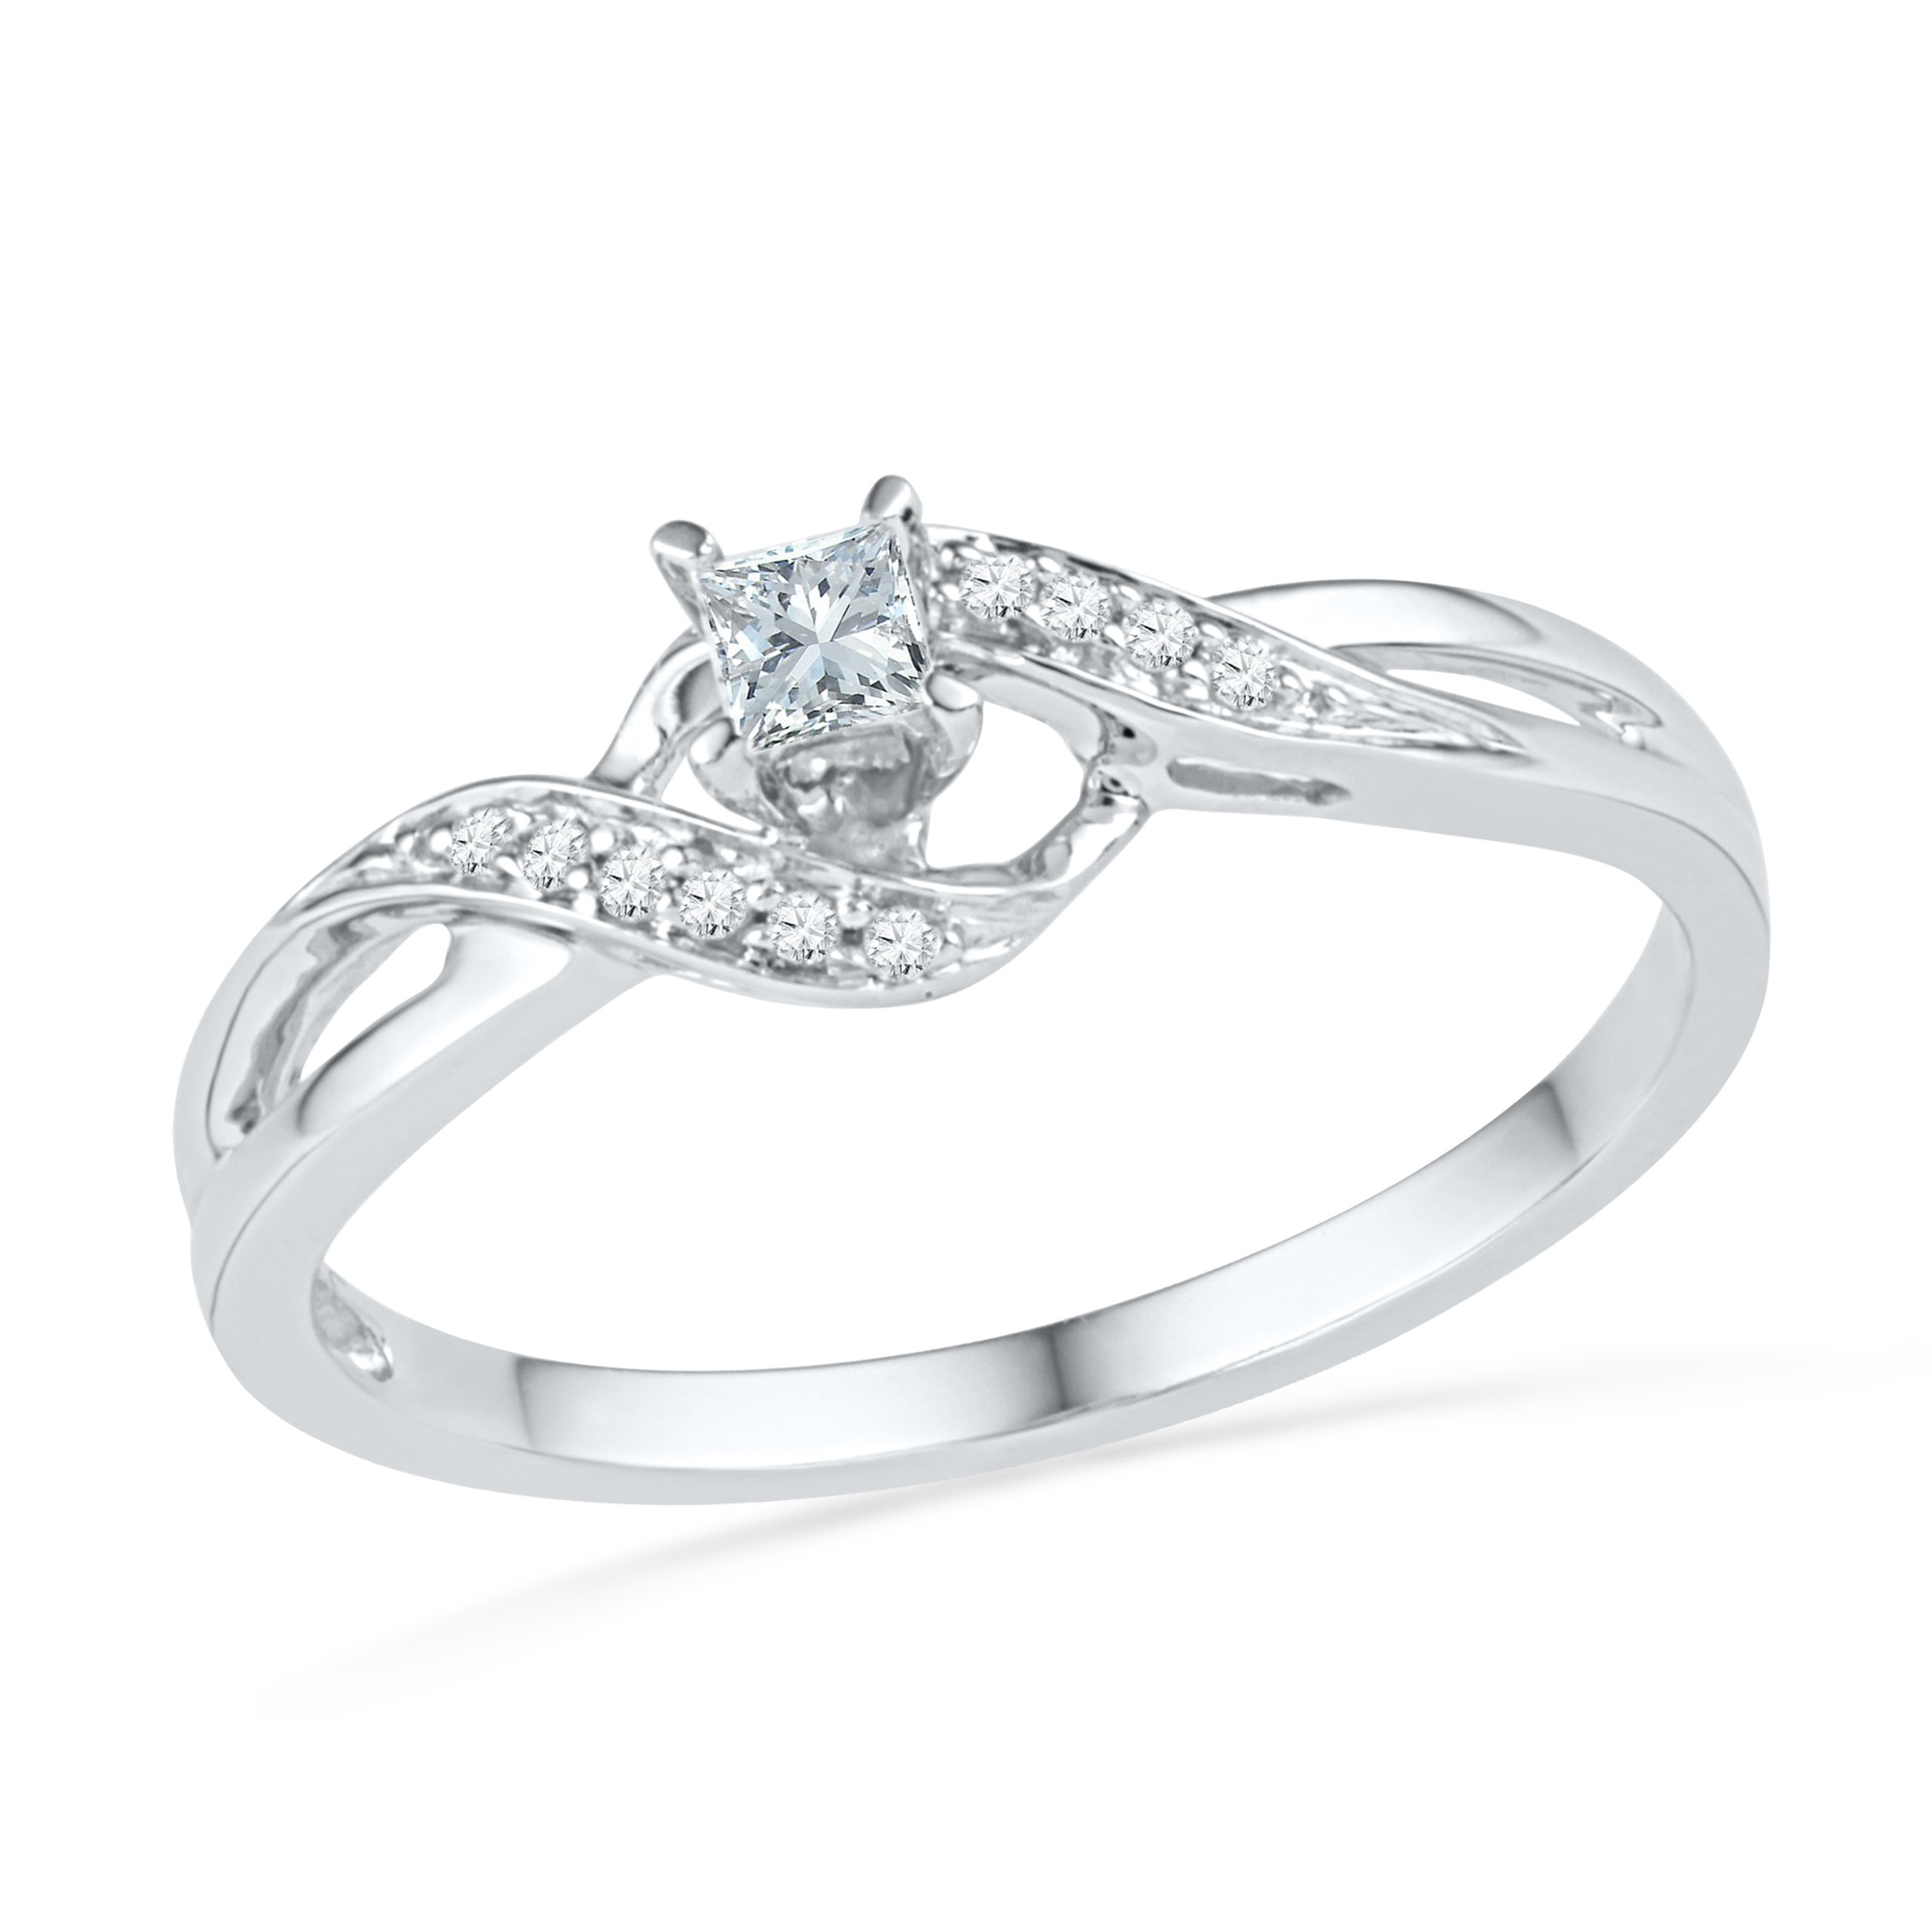 10KT White Gold Princess and Round Diamond Promise Ring (0.13 CTTW) by D-GOLD